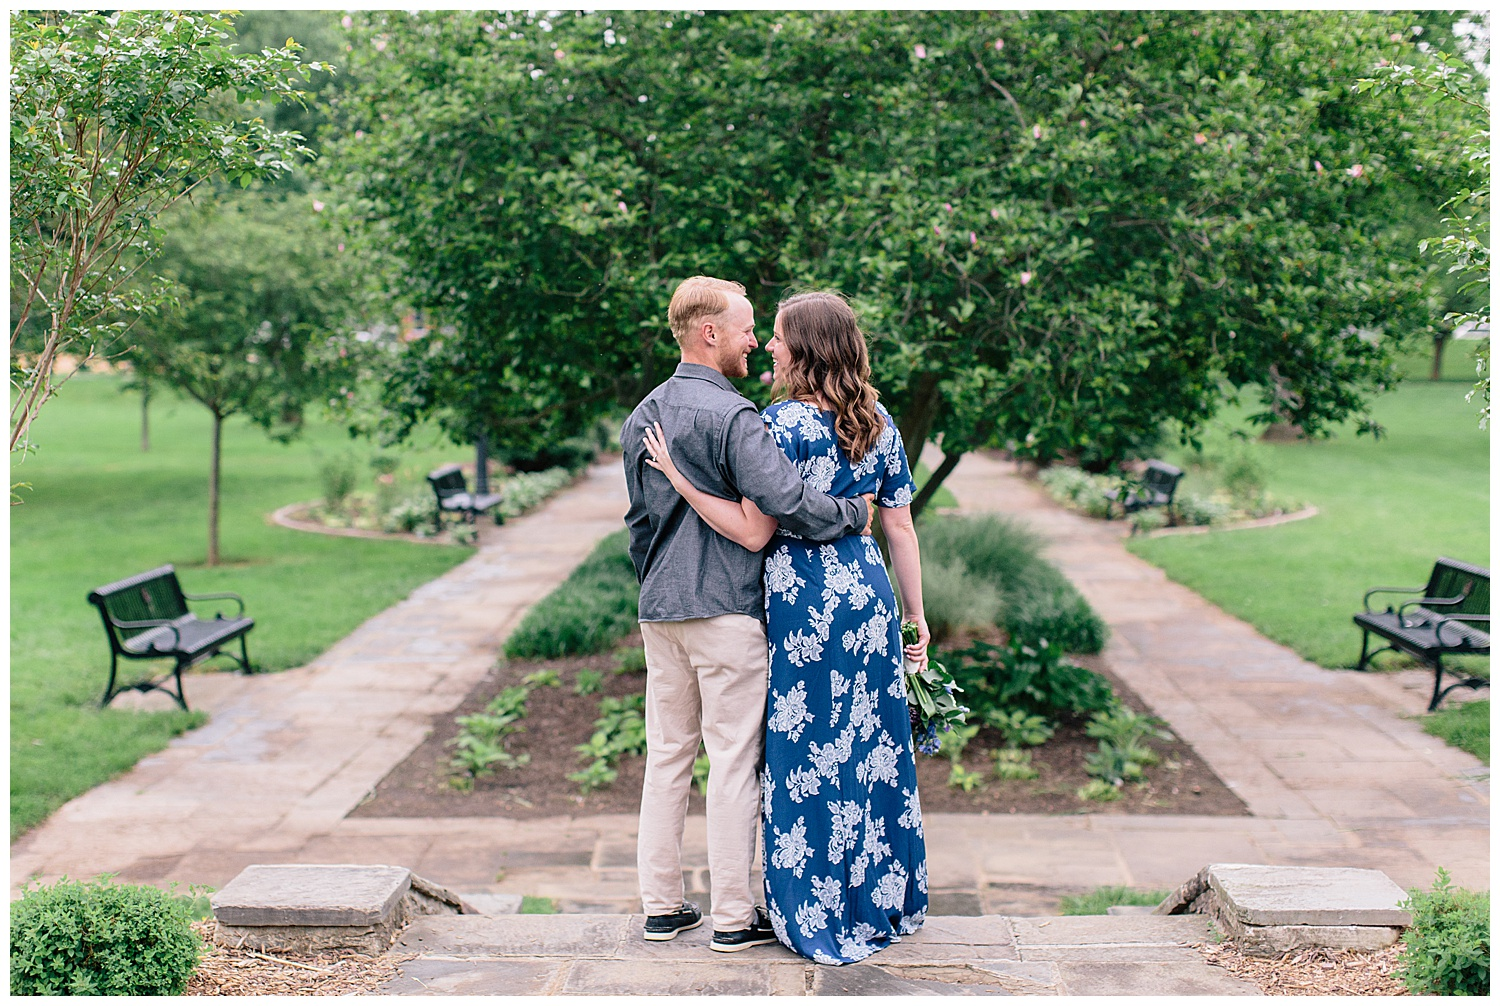 emily-belson-photography-frederick-md-engagement-23.jpg